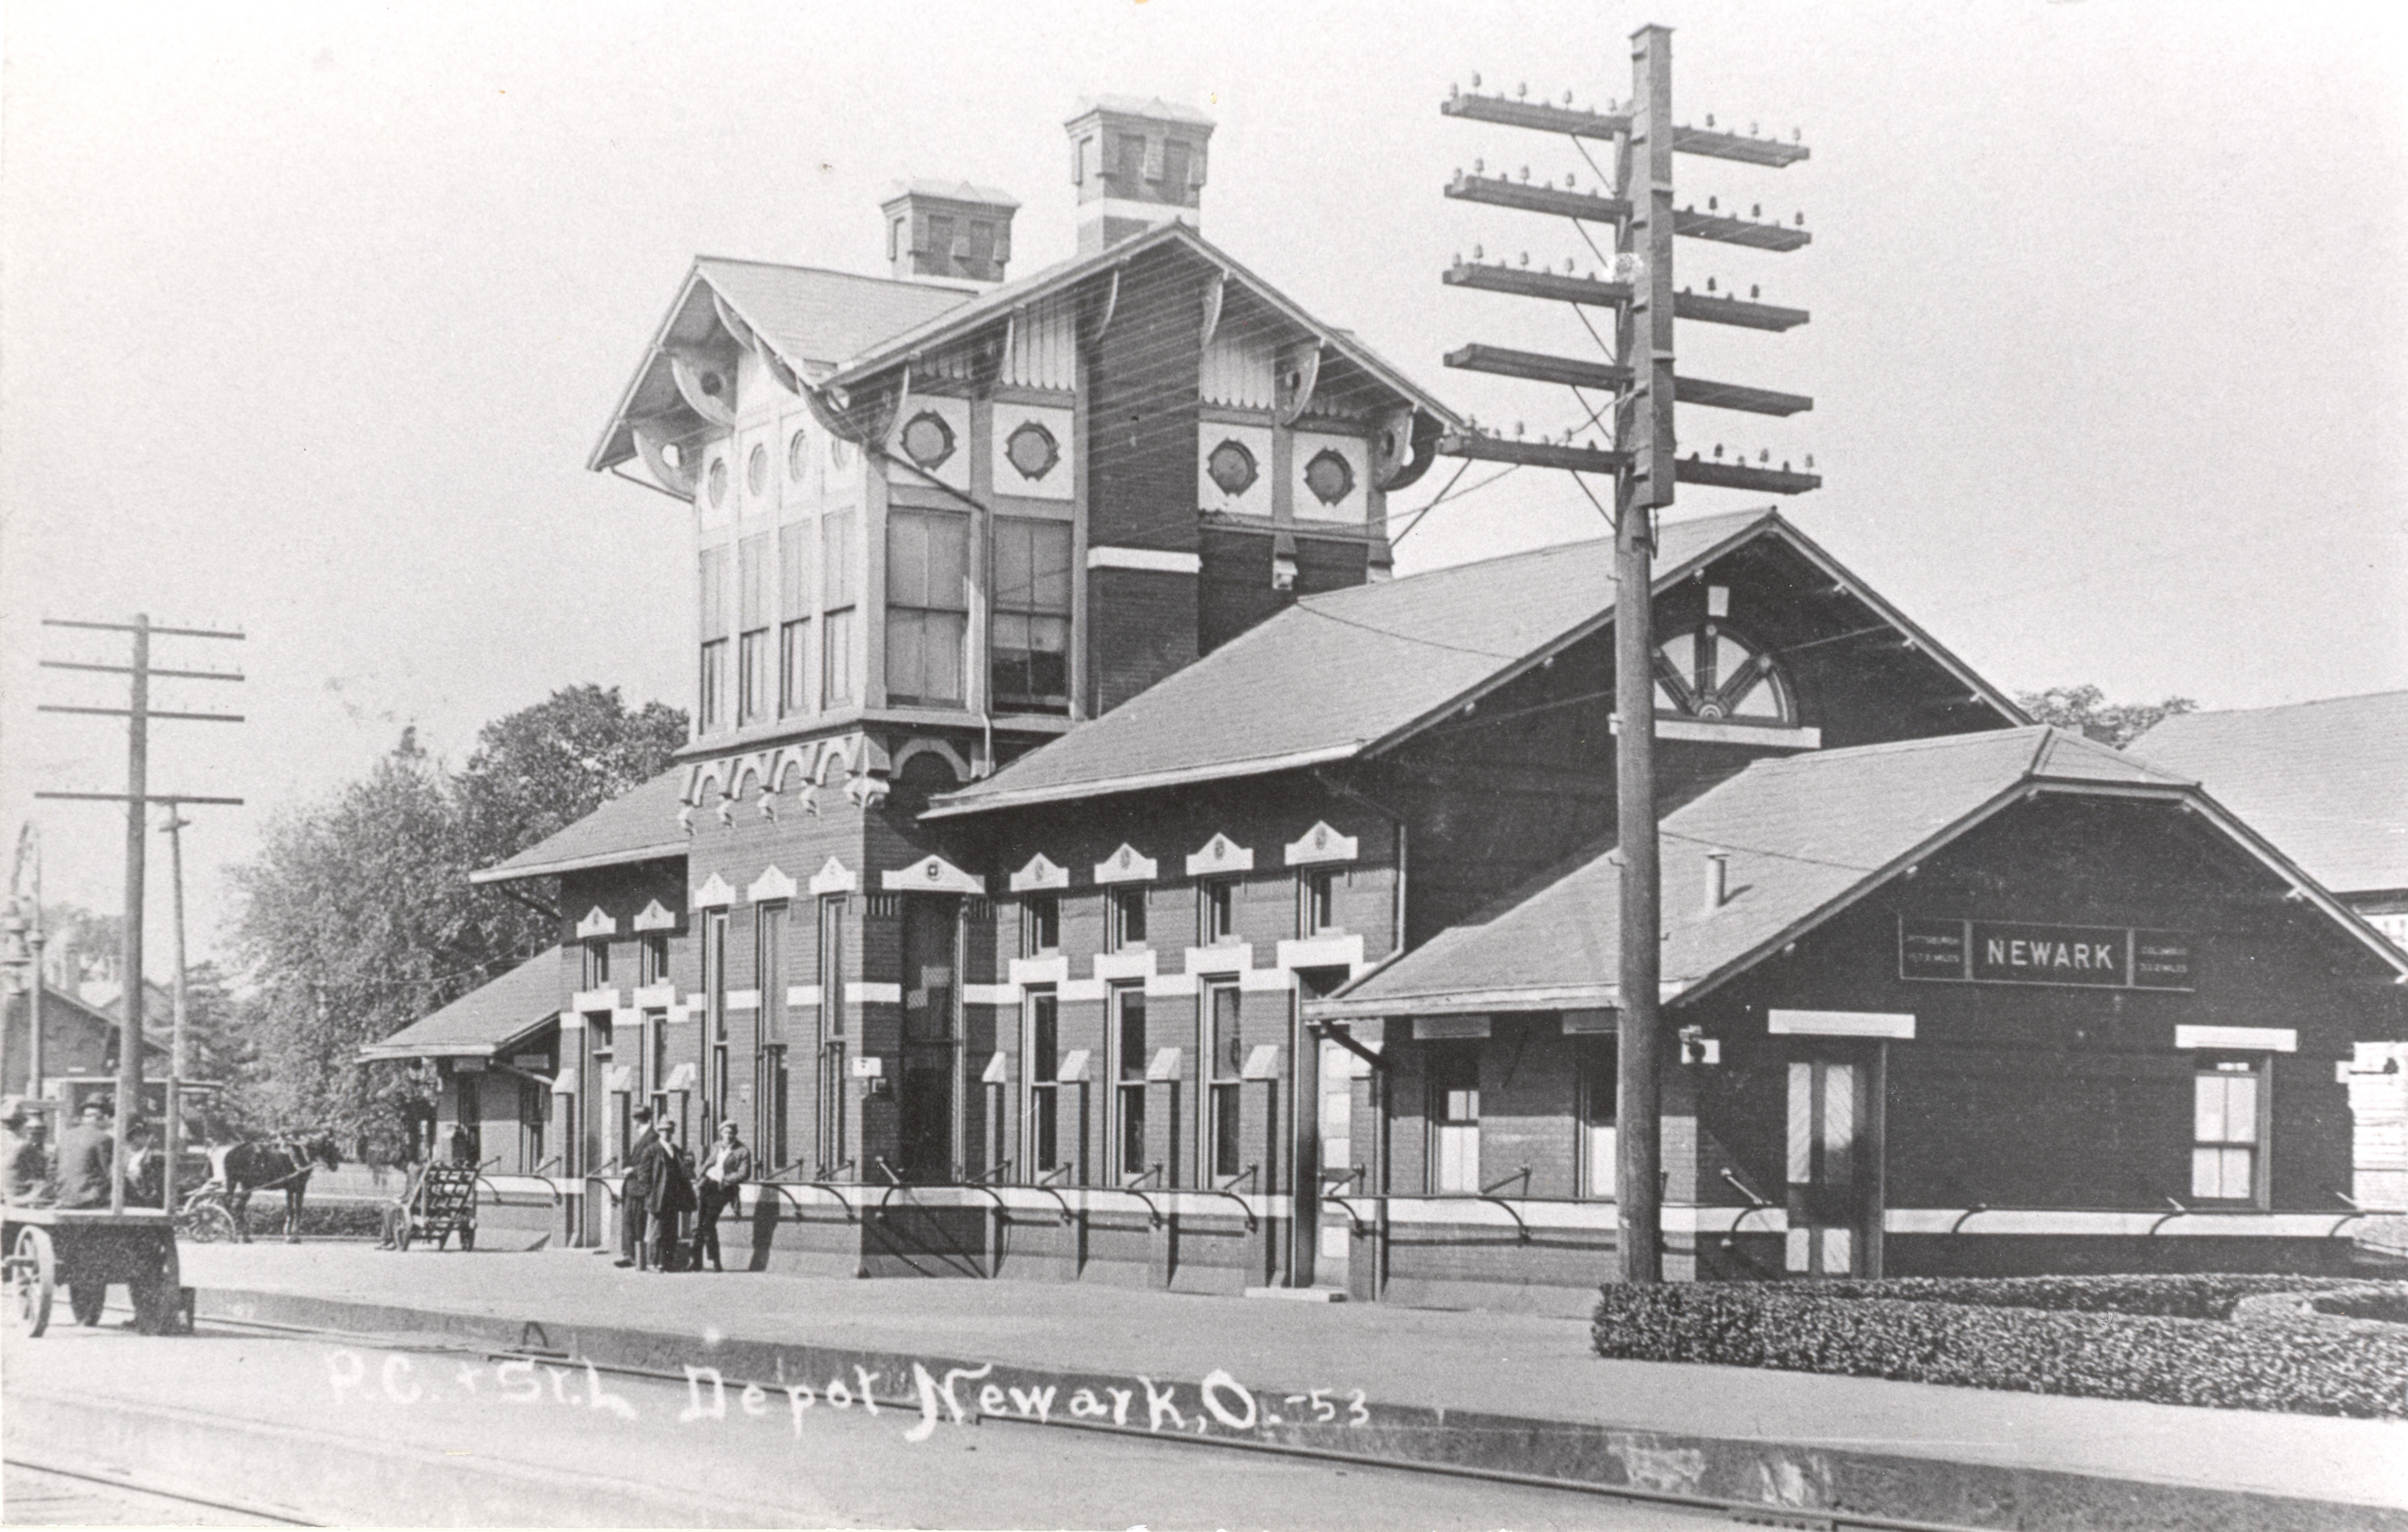 Pennsylvania Railroad passenger station, located on Walnut Street in downtown Newark.